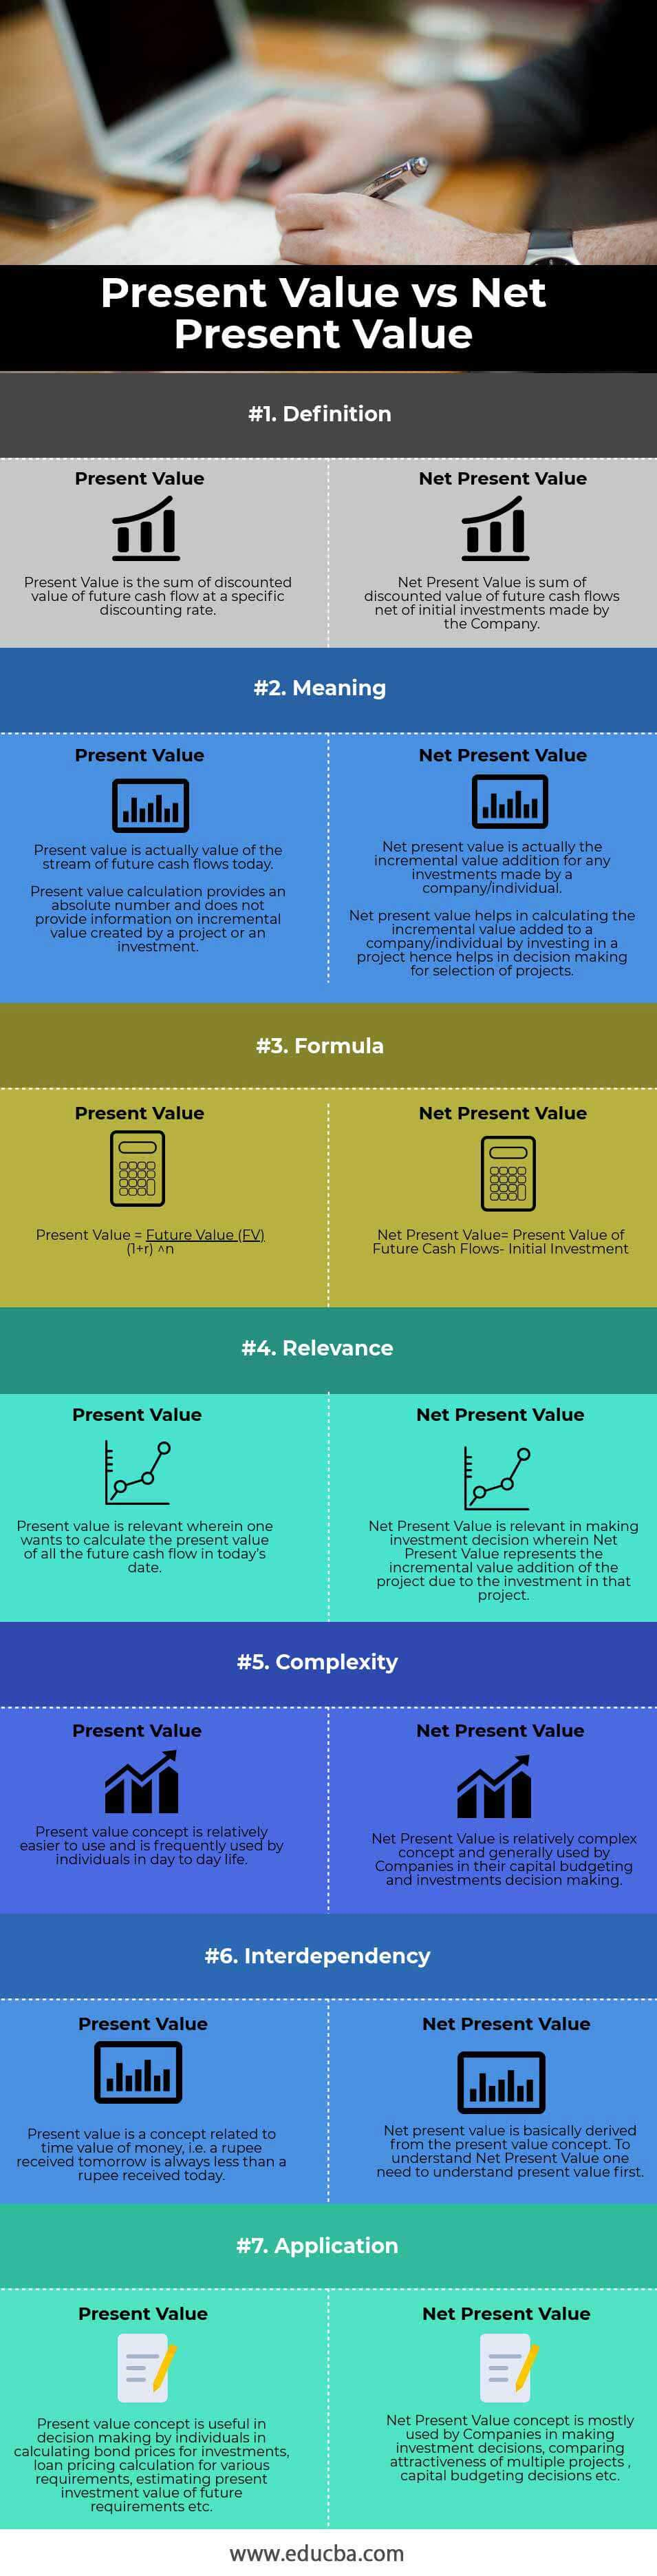 Present-Value-vs-Net-Present-Value-info